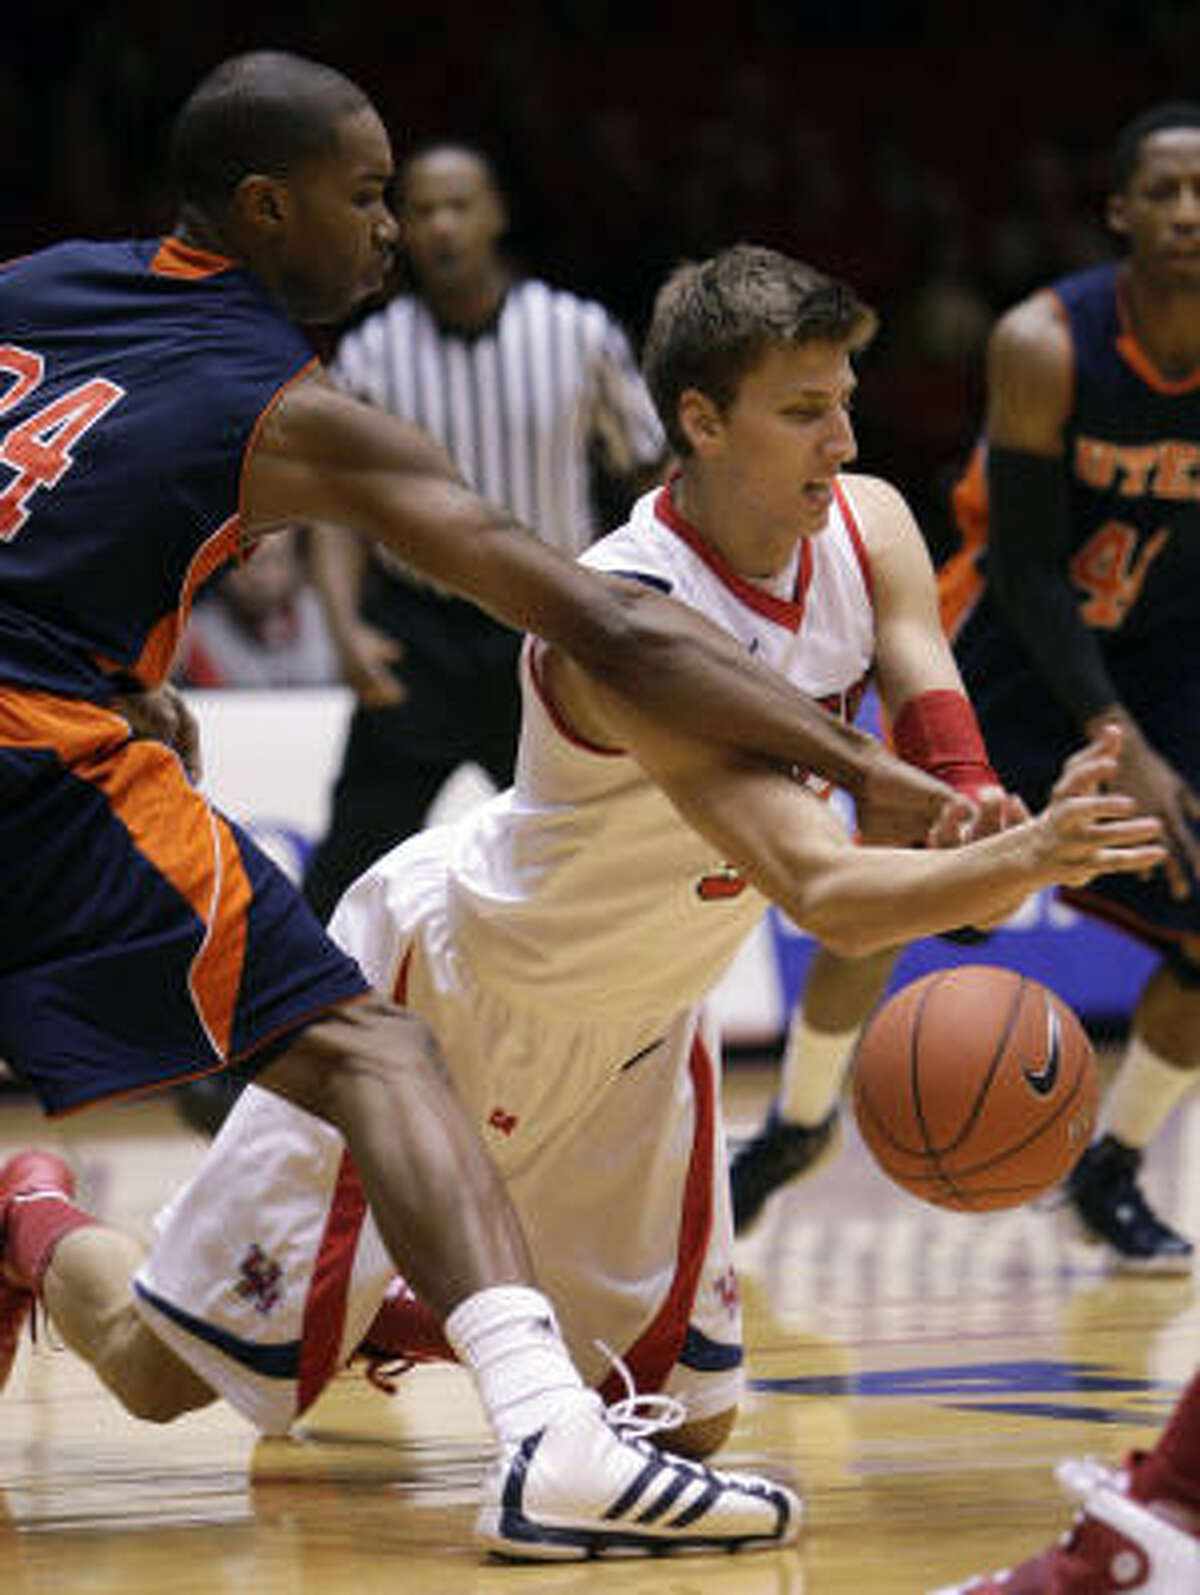 UH's Kirk Van Slyke, center, battles for a loose ball with UTEP's Jeremy Williams during the first half.